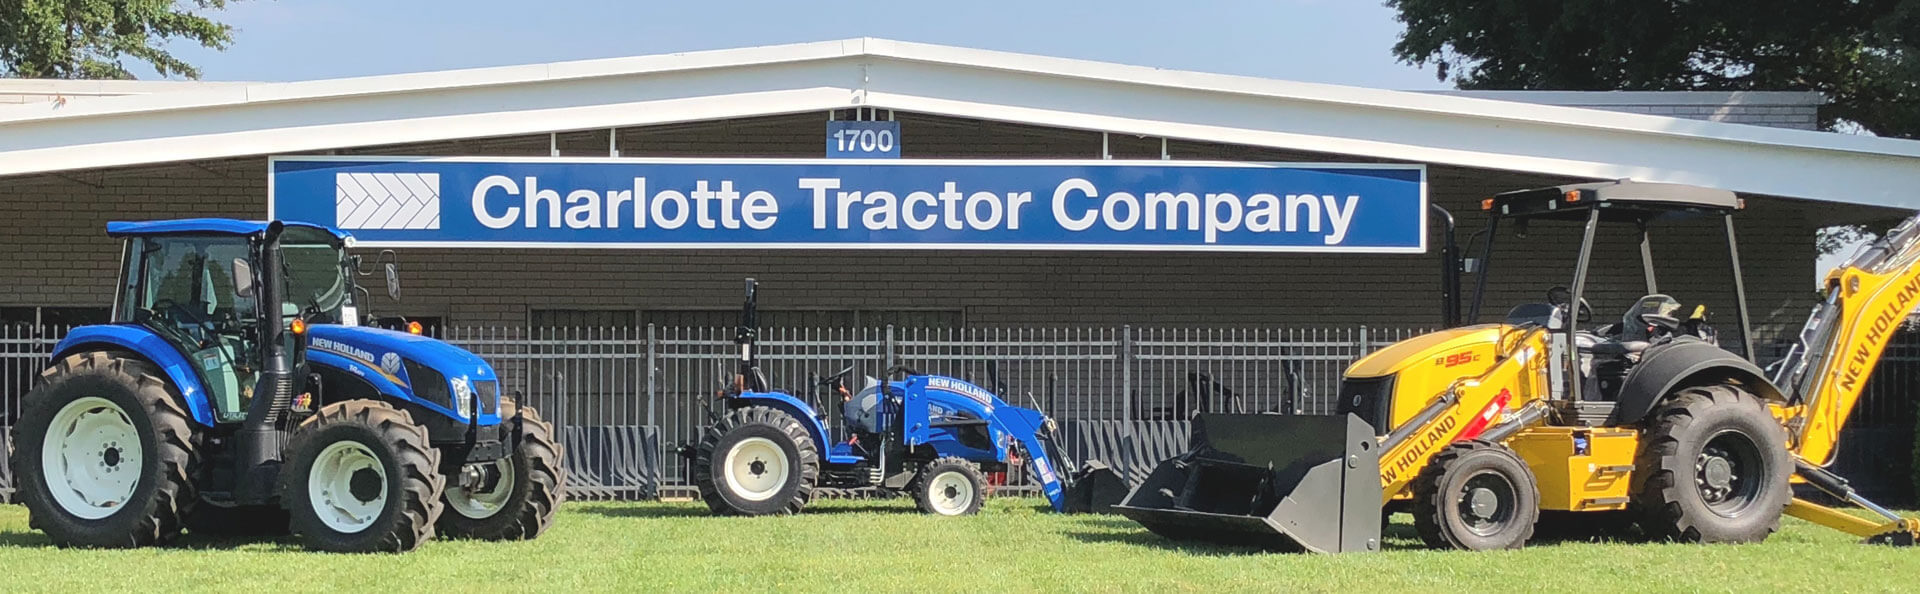 hight resolution of about charlotte tractor company